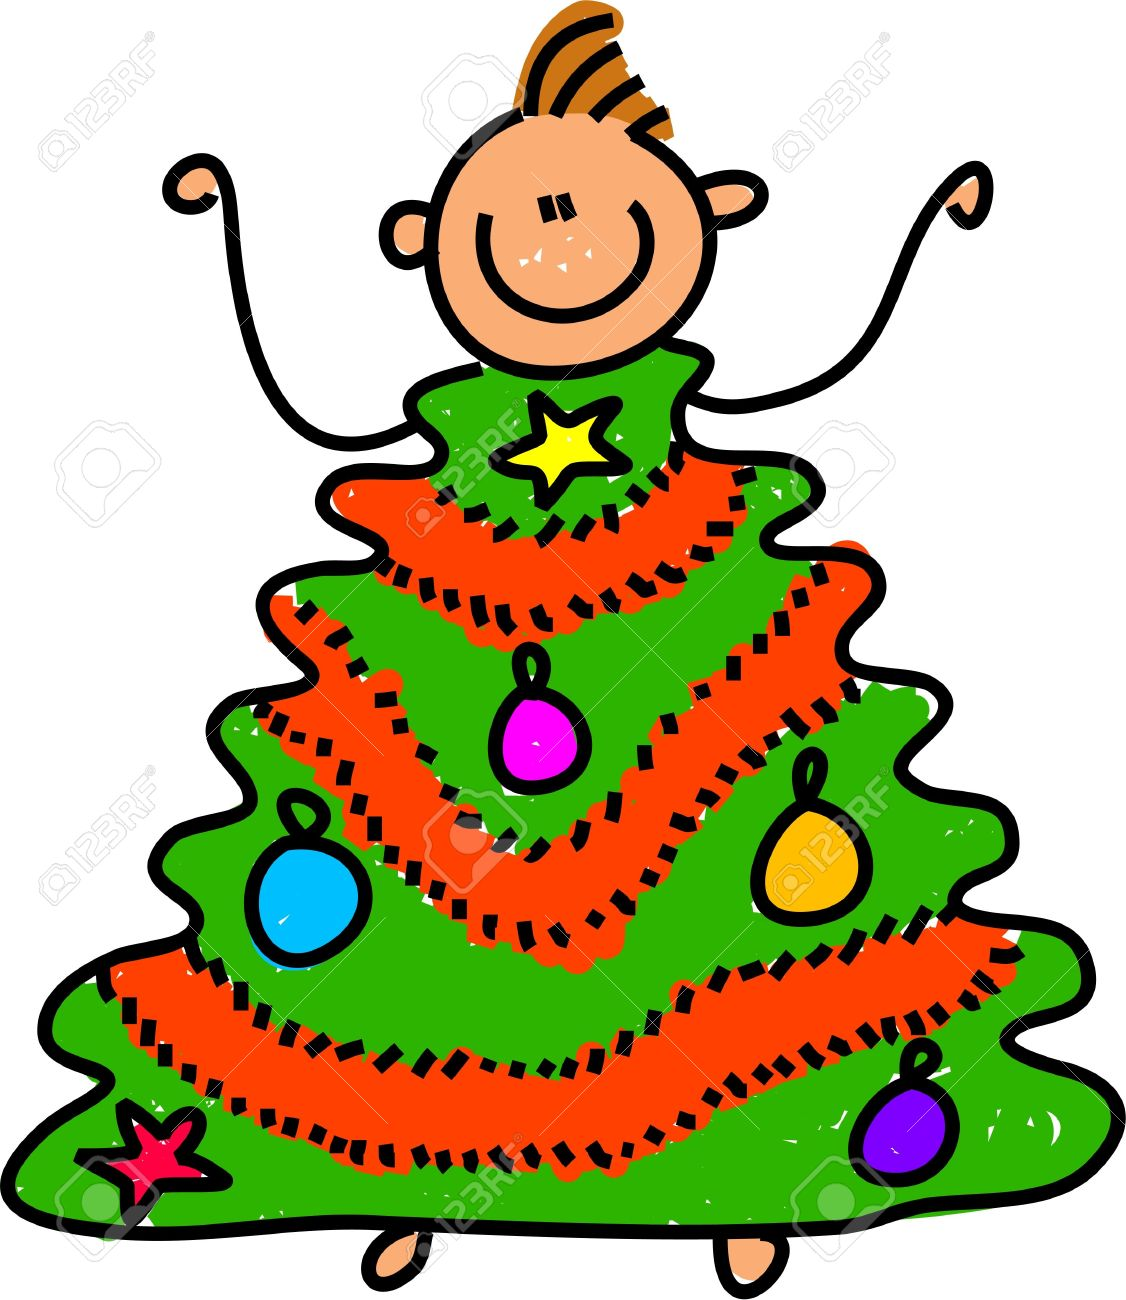 Christmas tree dress up images - Stock Photo Happy Little Boy Dressed Up As A Christmas Tree Toddler Art Series